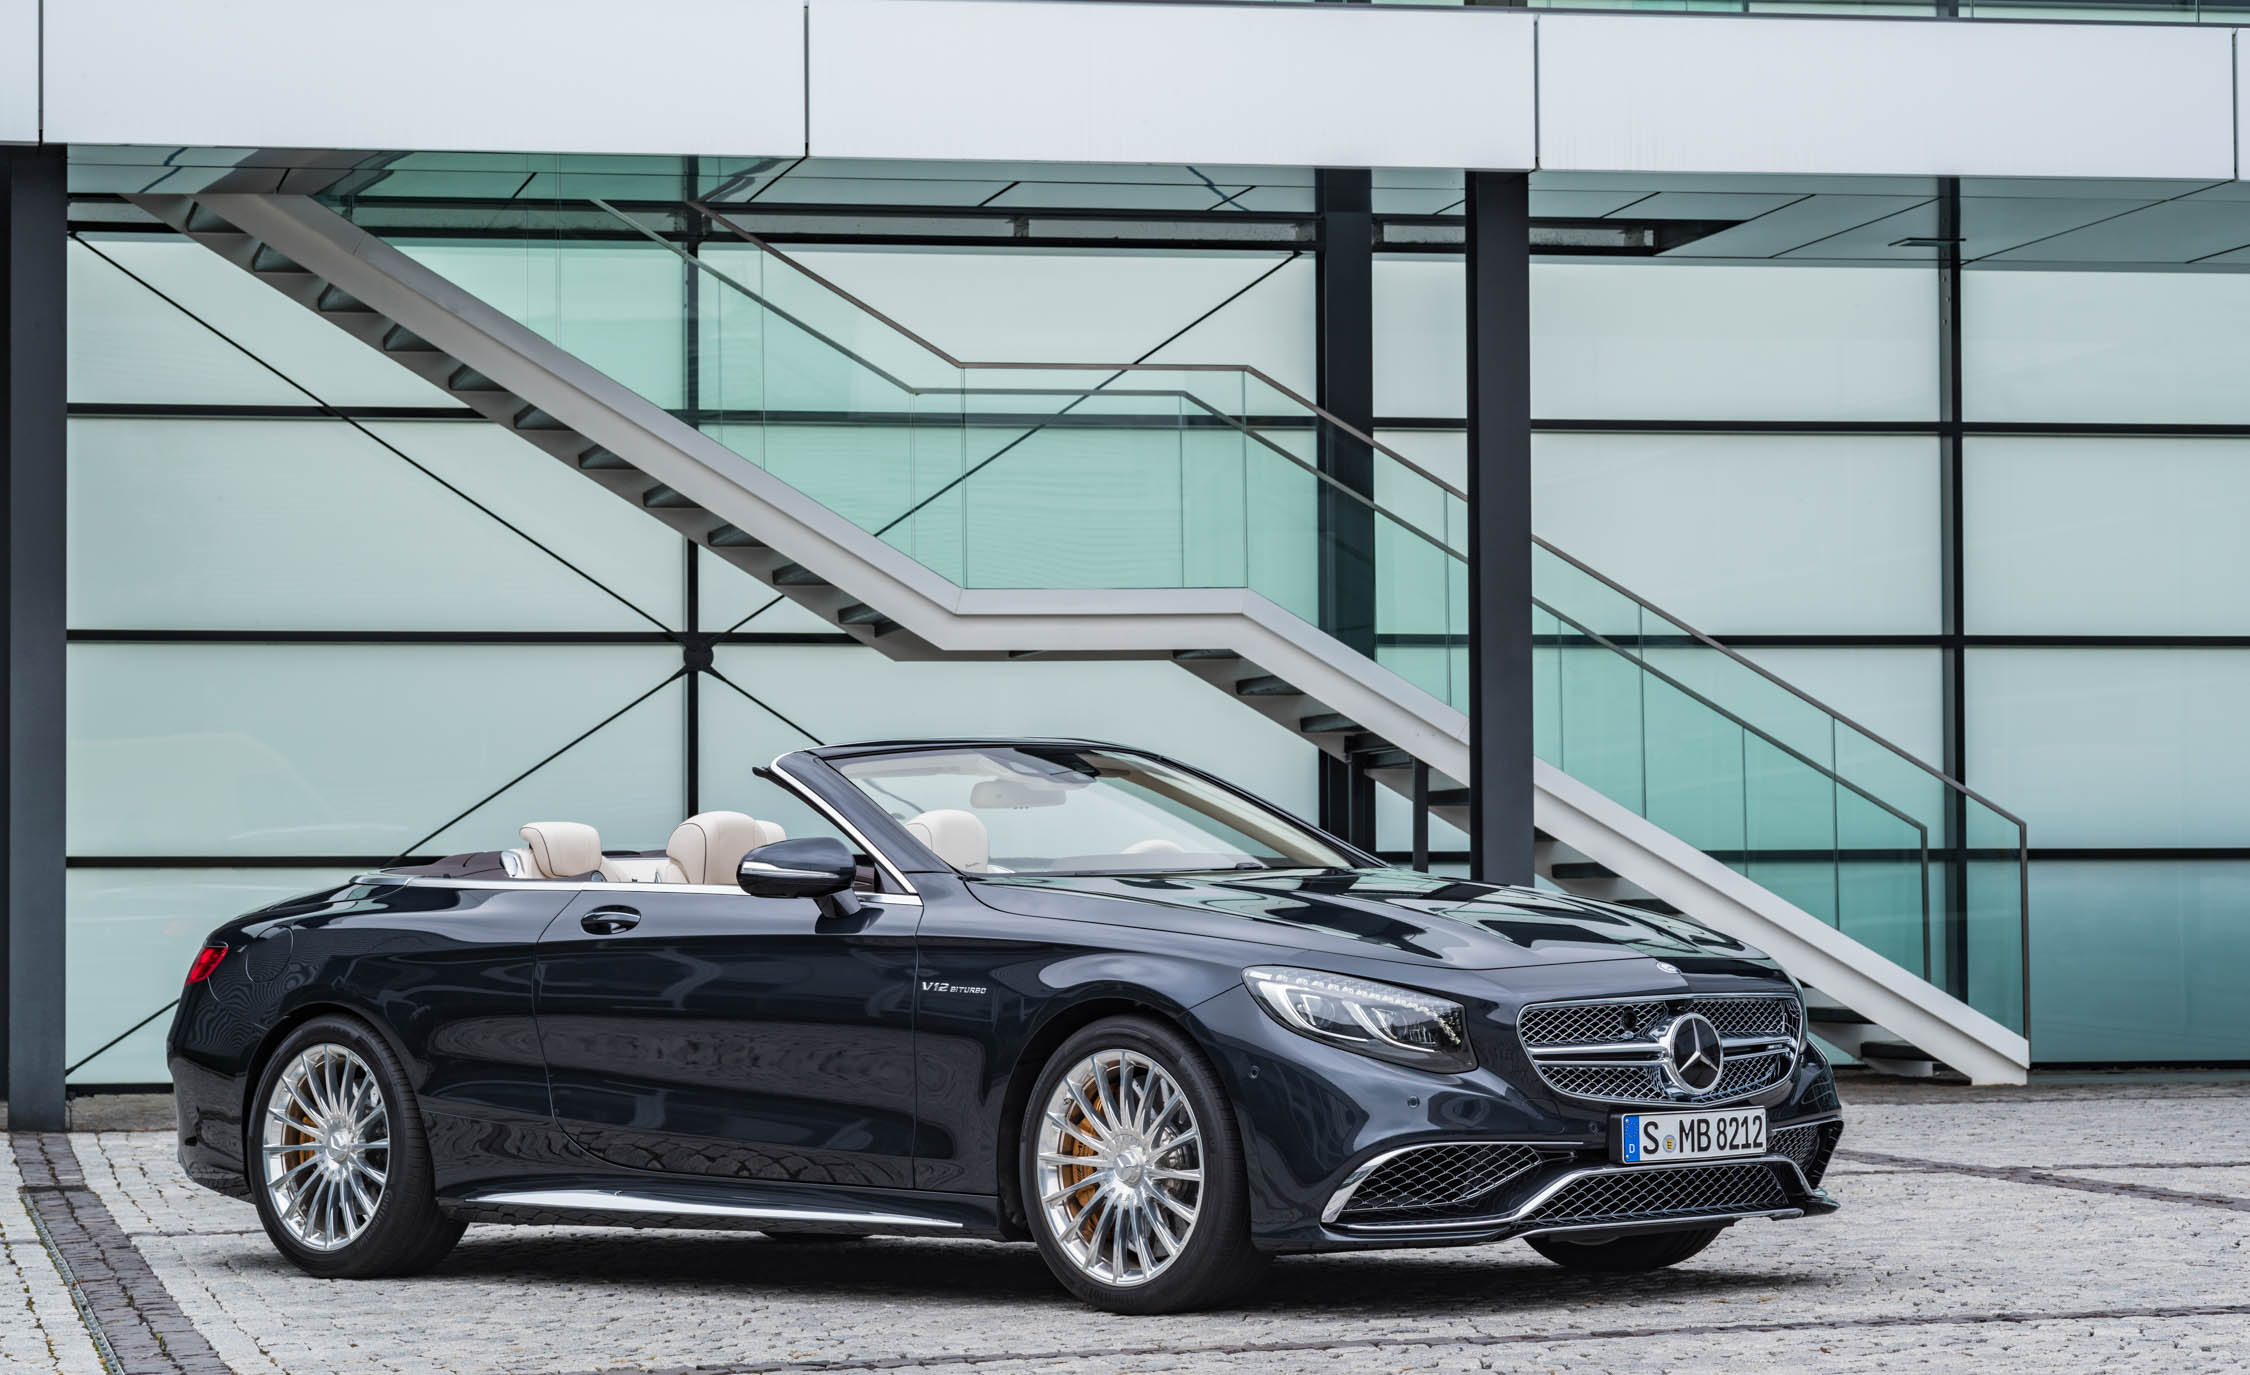 2017 Mercedes Amg S65 Cabriolet Exterior Front And Side View Roof Open (Photo 4 of 15)